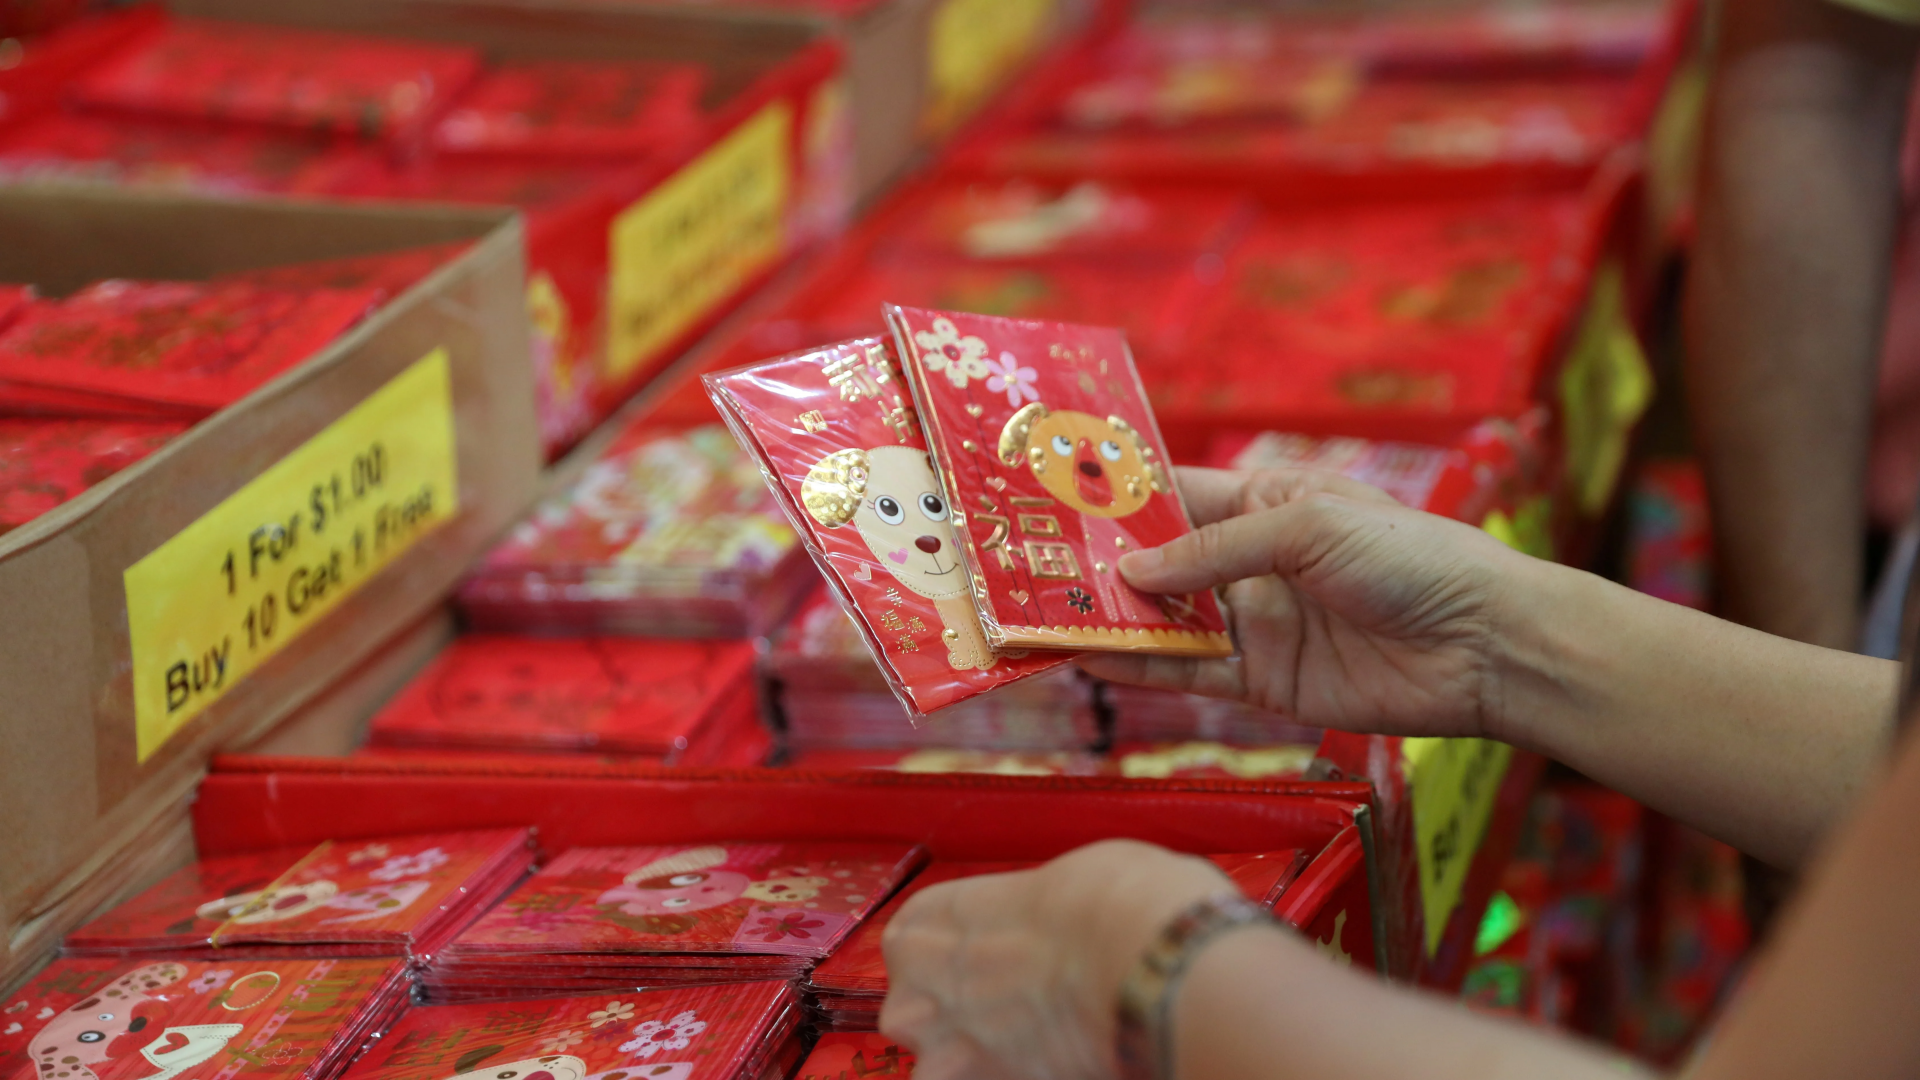 Singapore promotes digital monetary gifts, facilitating the gift-giving tradition in the Lunar New Year